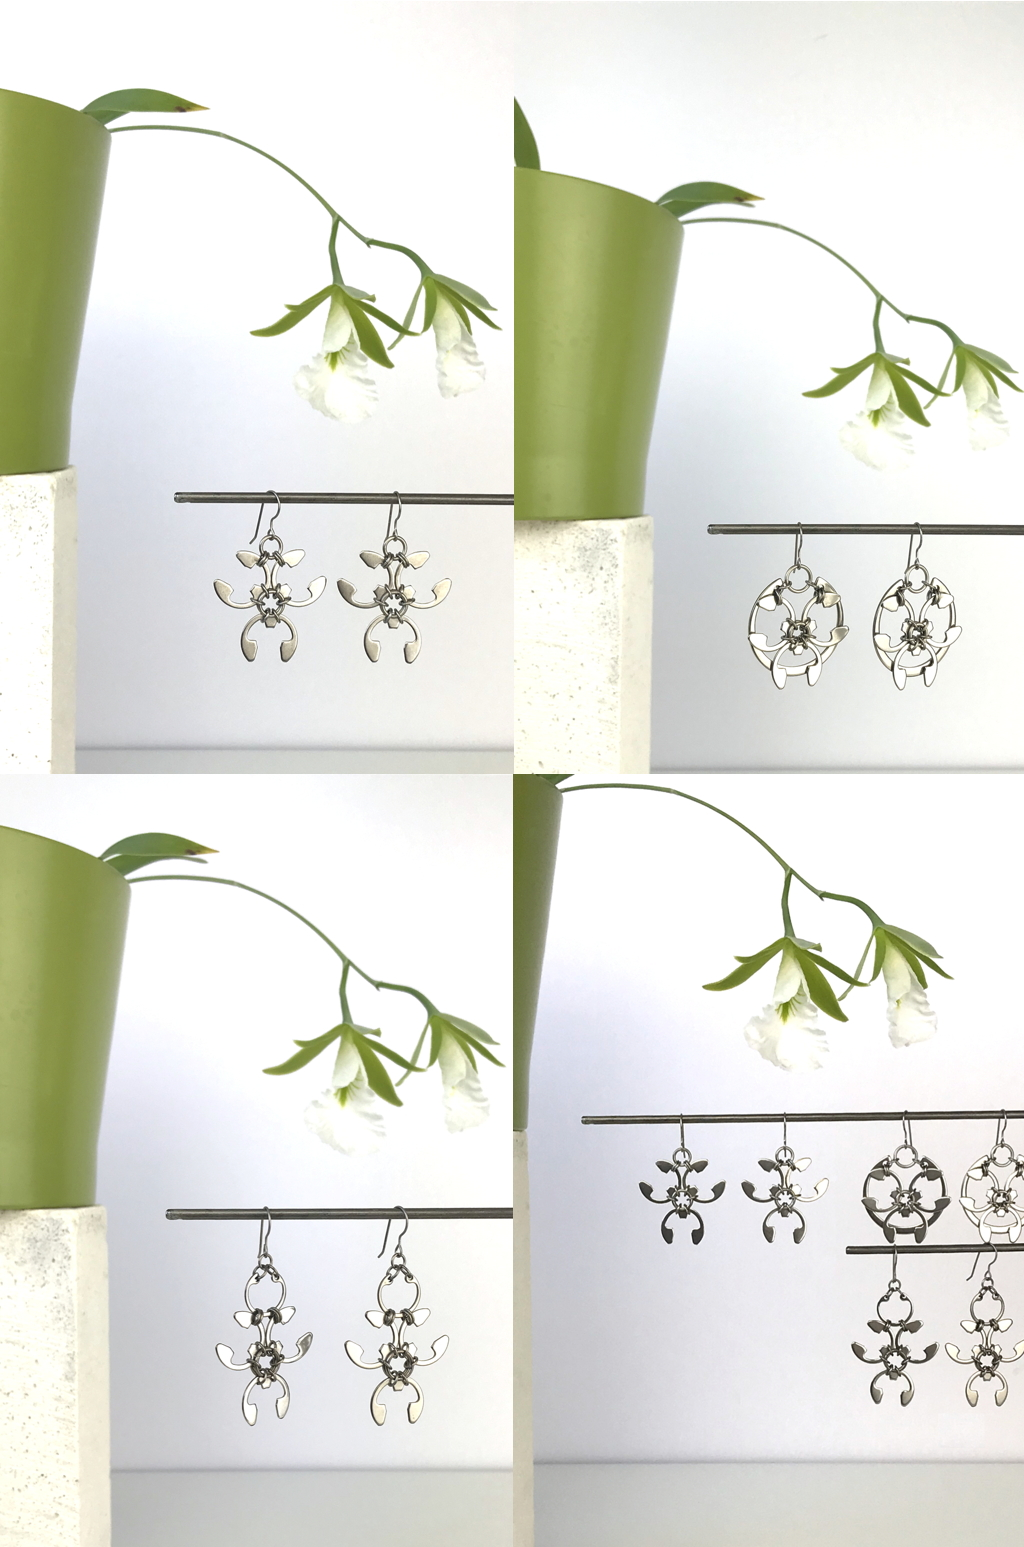 Compiled image of 4 photos featuring Wraptillion's Trellis Earrings, Rose Window Earrings, and Garland Earrings with blooming orchid Encyclia mariae in a green cachepot.